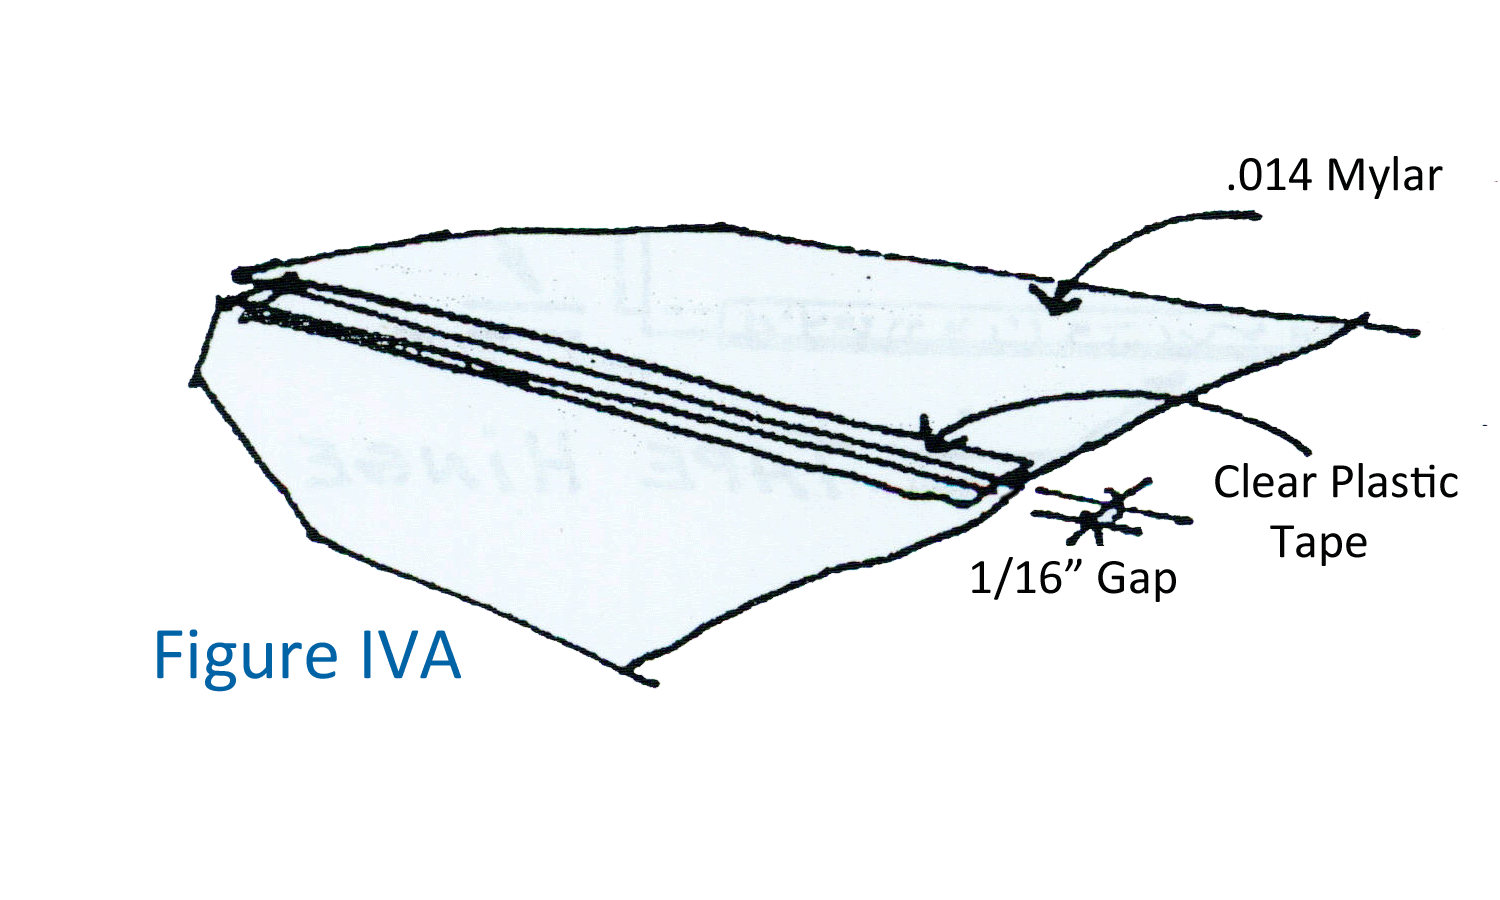 Figure IVA for Sheeting Foam Wings with Composite Materials